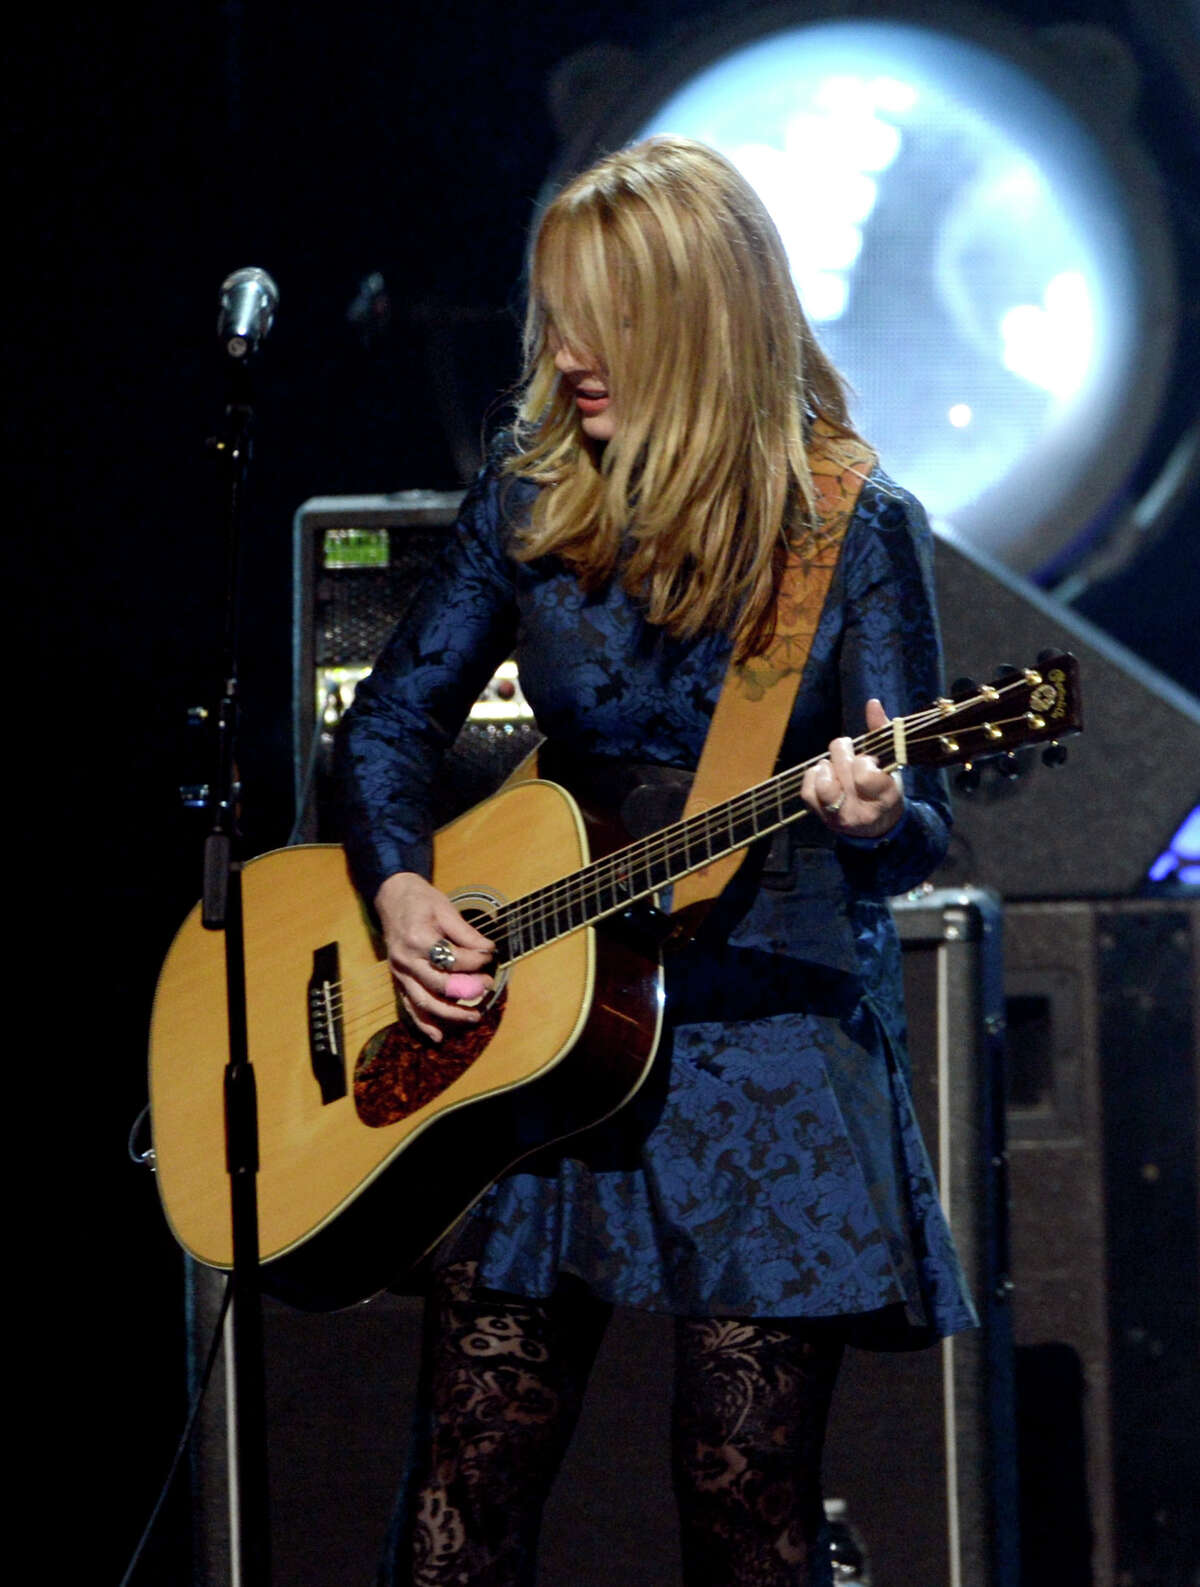 Indcutee Nancy Wilson of Heart performs on stage at the 28th Annual Rock and Roll Hall of Fame Induction Ceremony at Nokia Theatre L.A. Live on April 18, 2013 in Los Angeles, California.